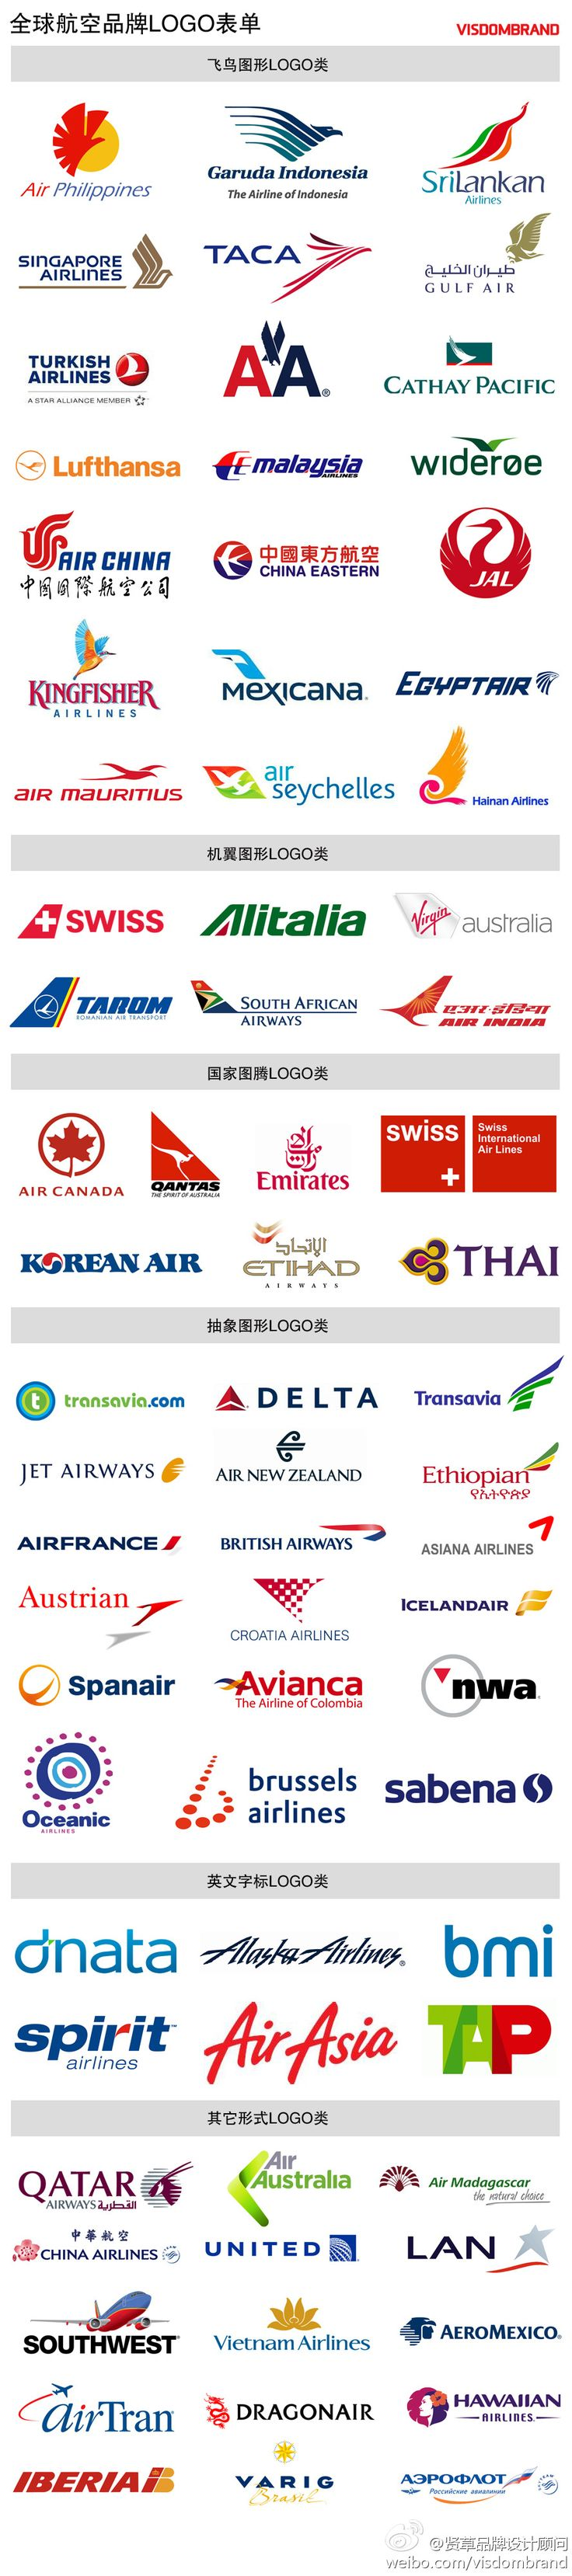 Airline brands